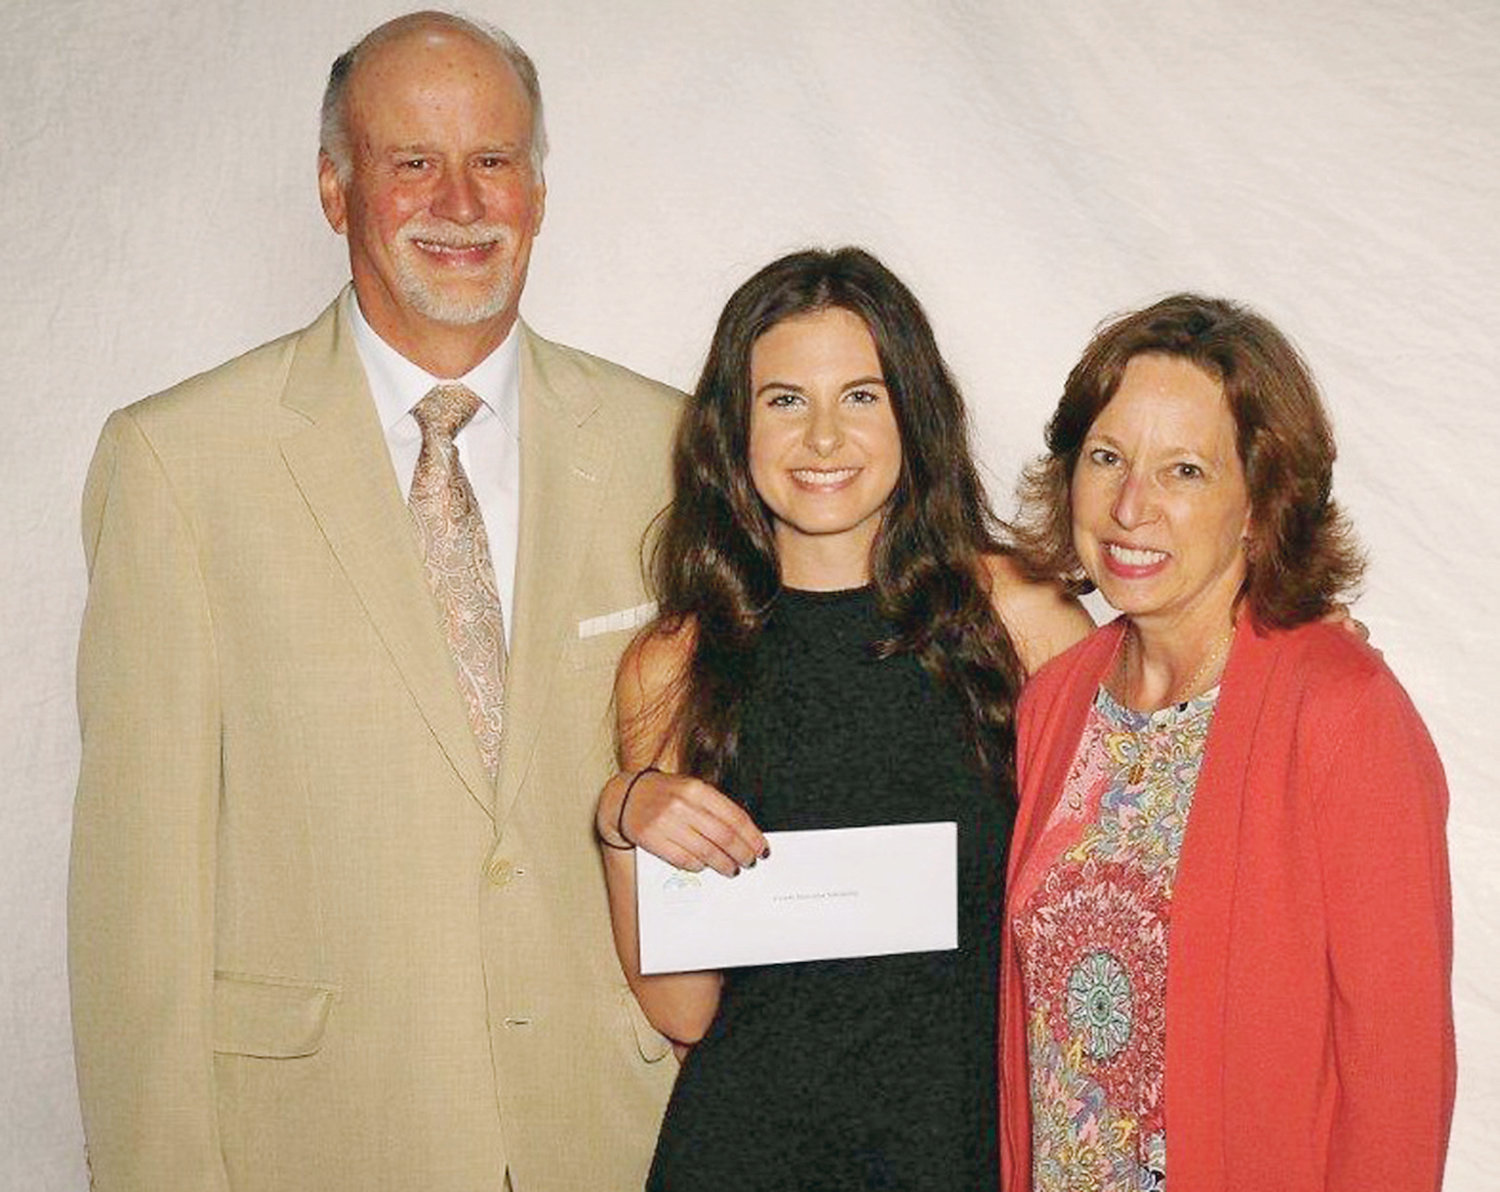 KRISTA RIAD, center, a 2019 graduate of Cleveland High School, has been named recipient of the inaugural Coombs Motivation Scholarship. Making the scholarship presentation are founders Dr. Rob Coombs, left, and Dr. Janet Coombs, right.